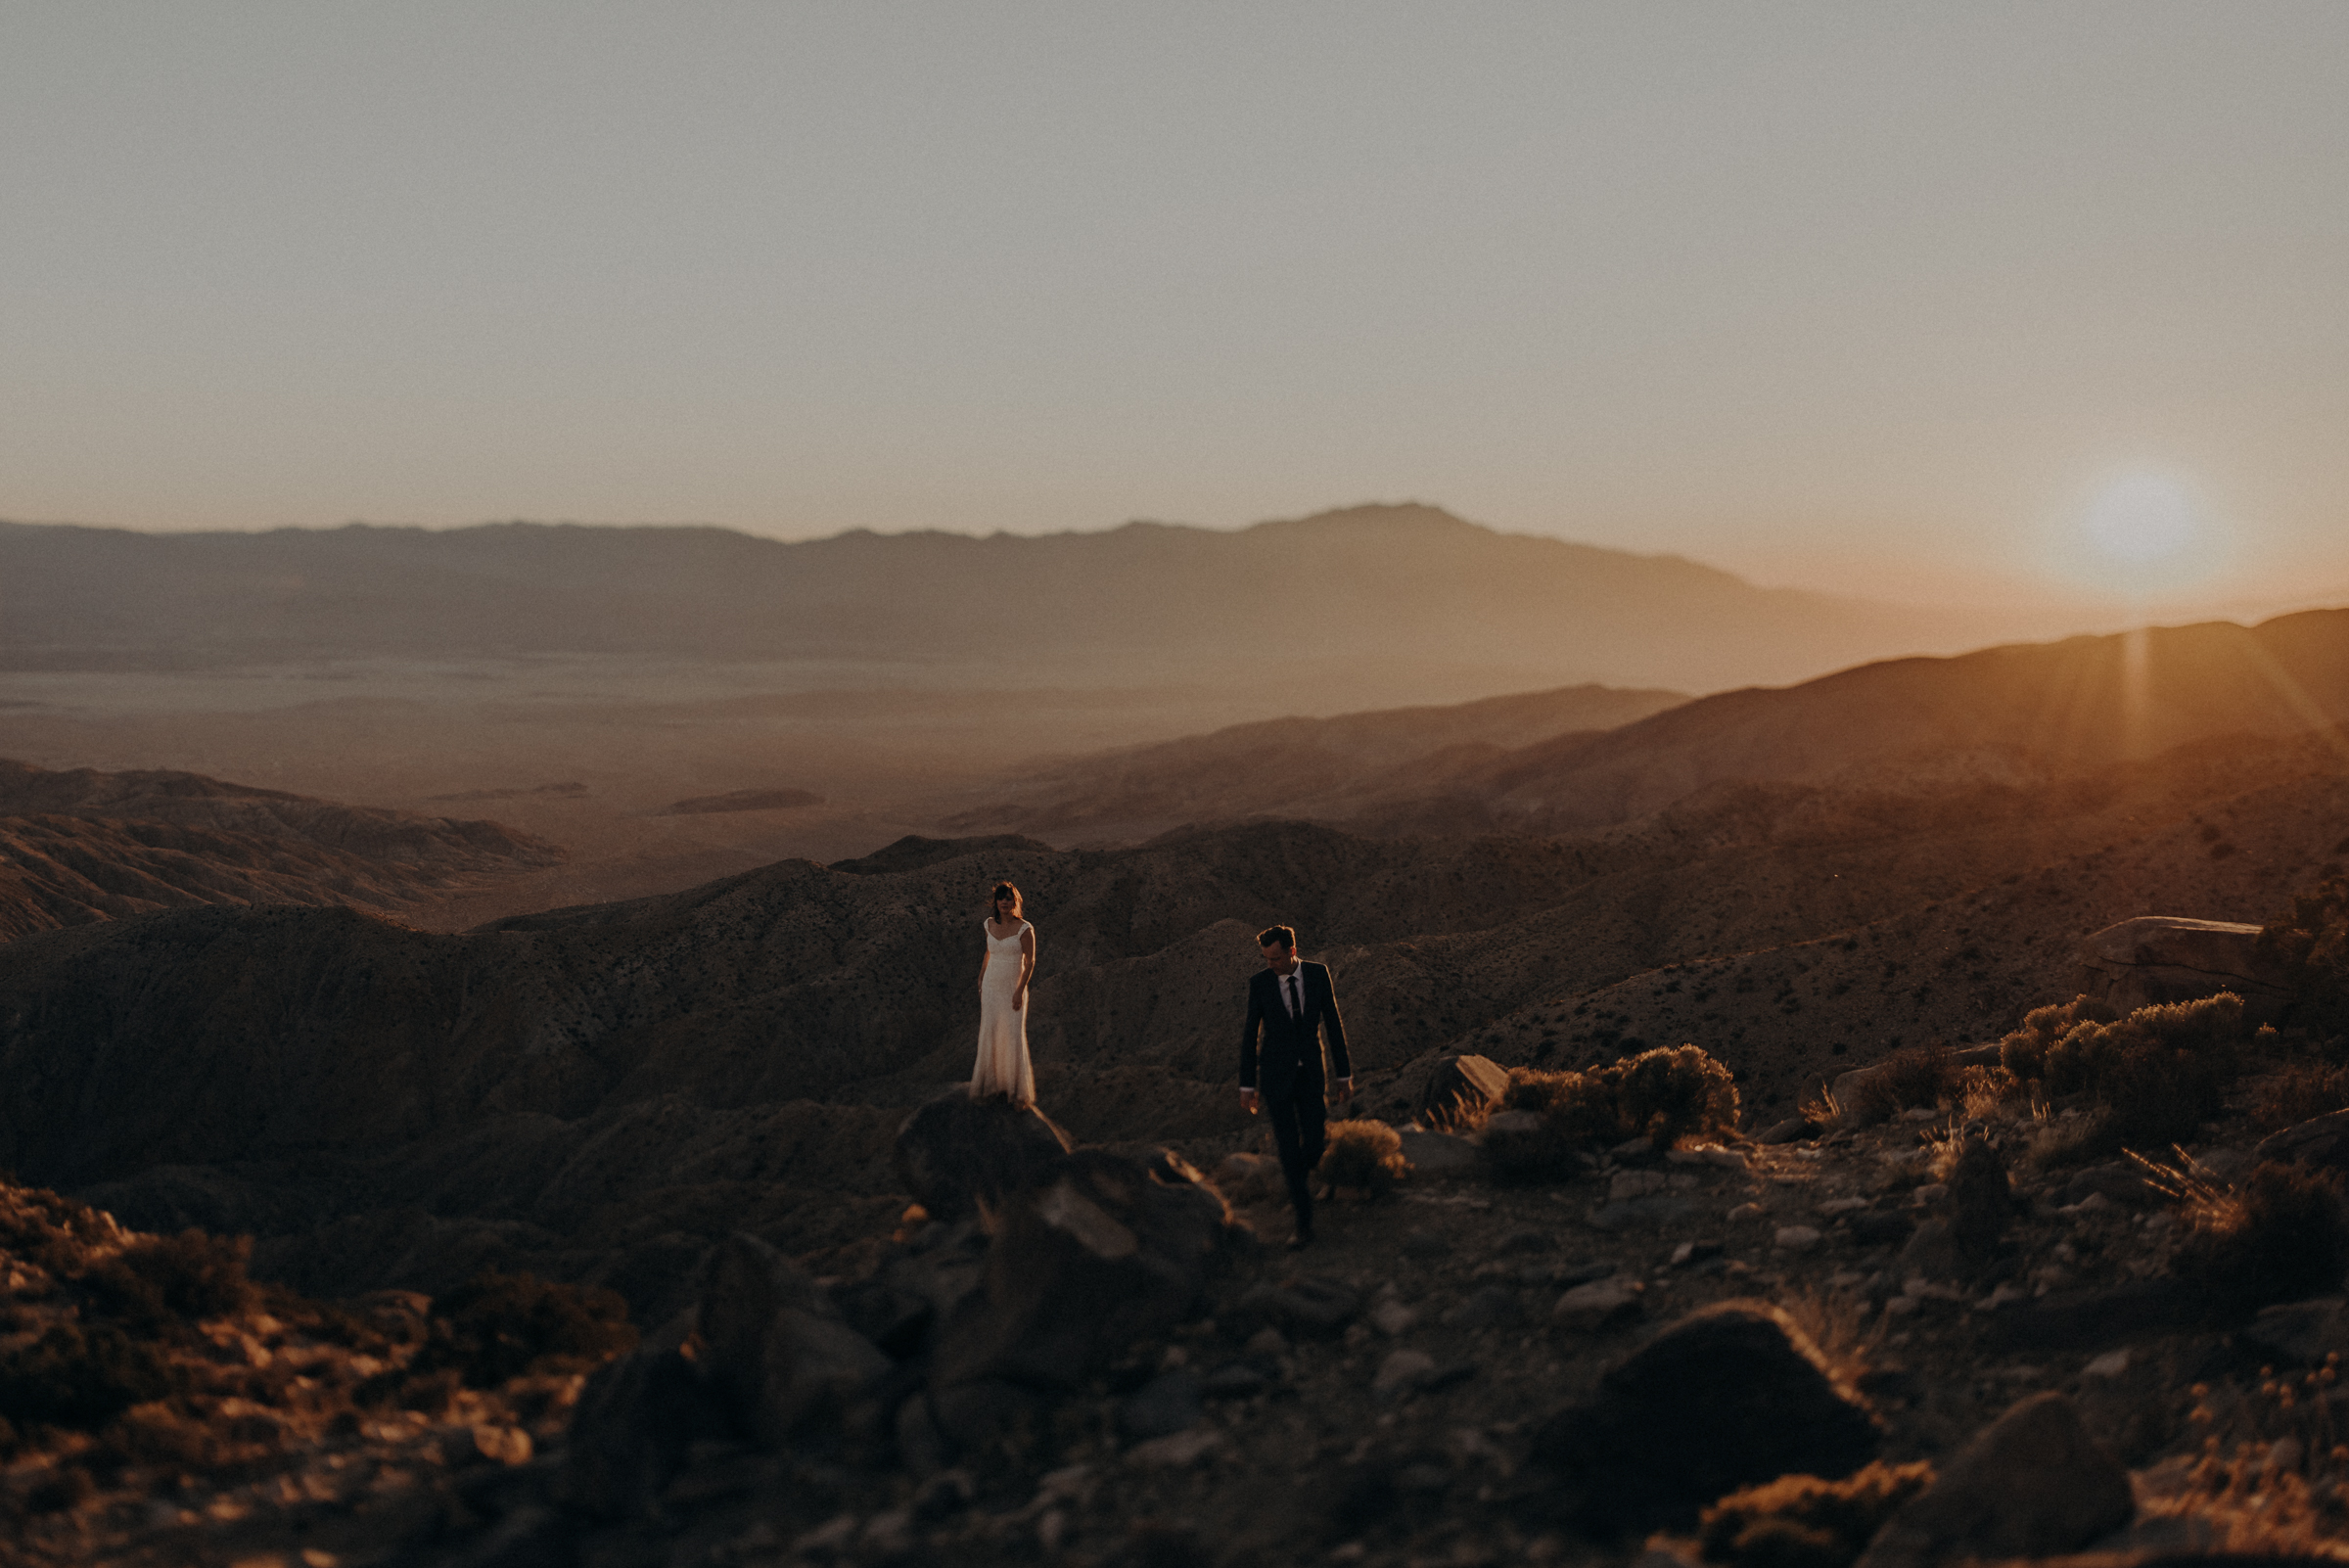 Joshua Tree Elopement - Los Angeles Wedding Photographers - IsaiahAndTaylor.com-102.jpg